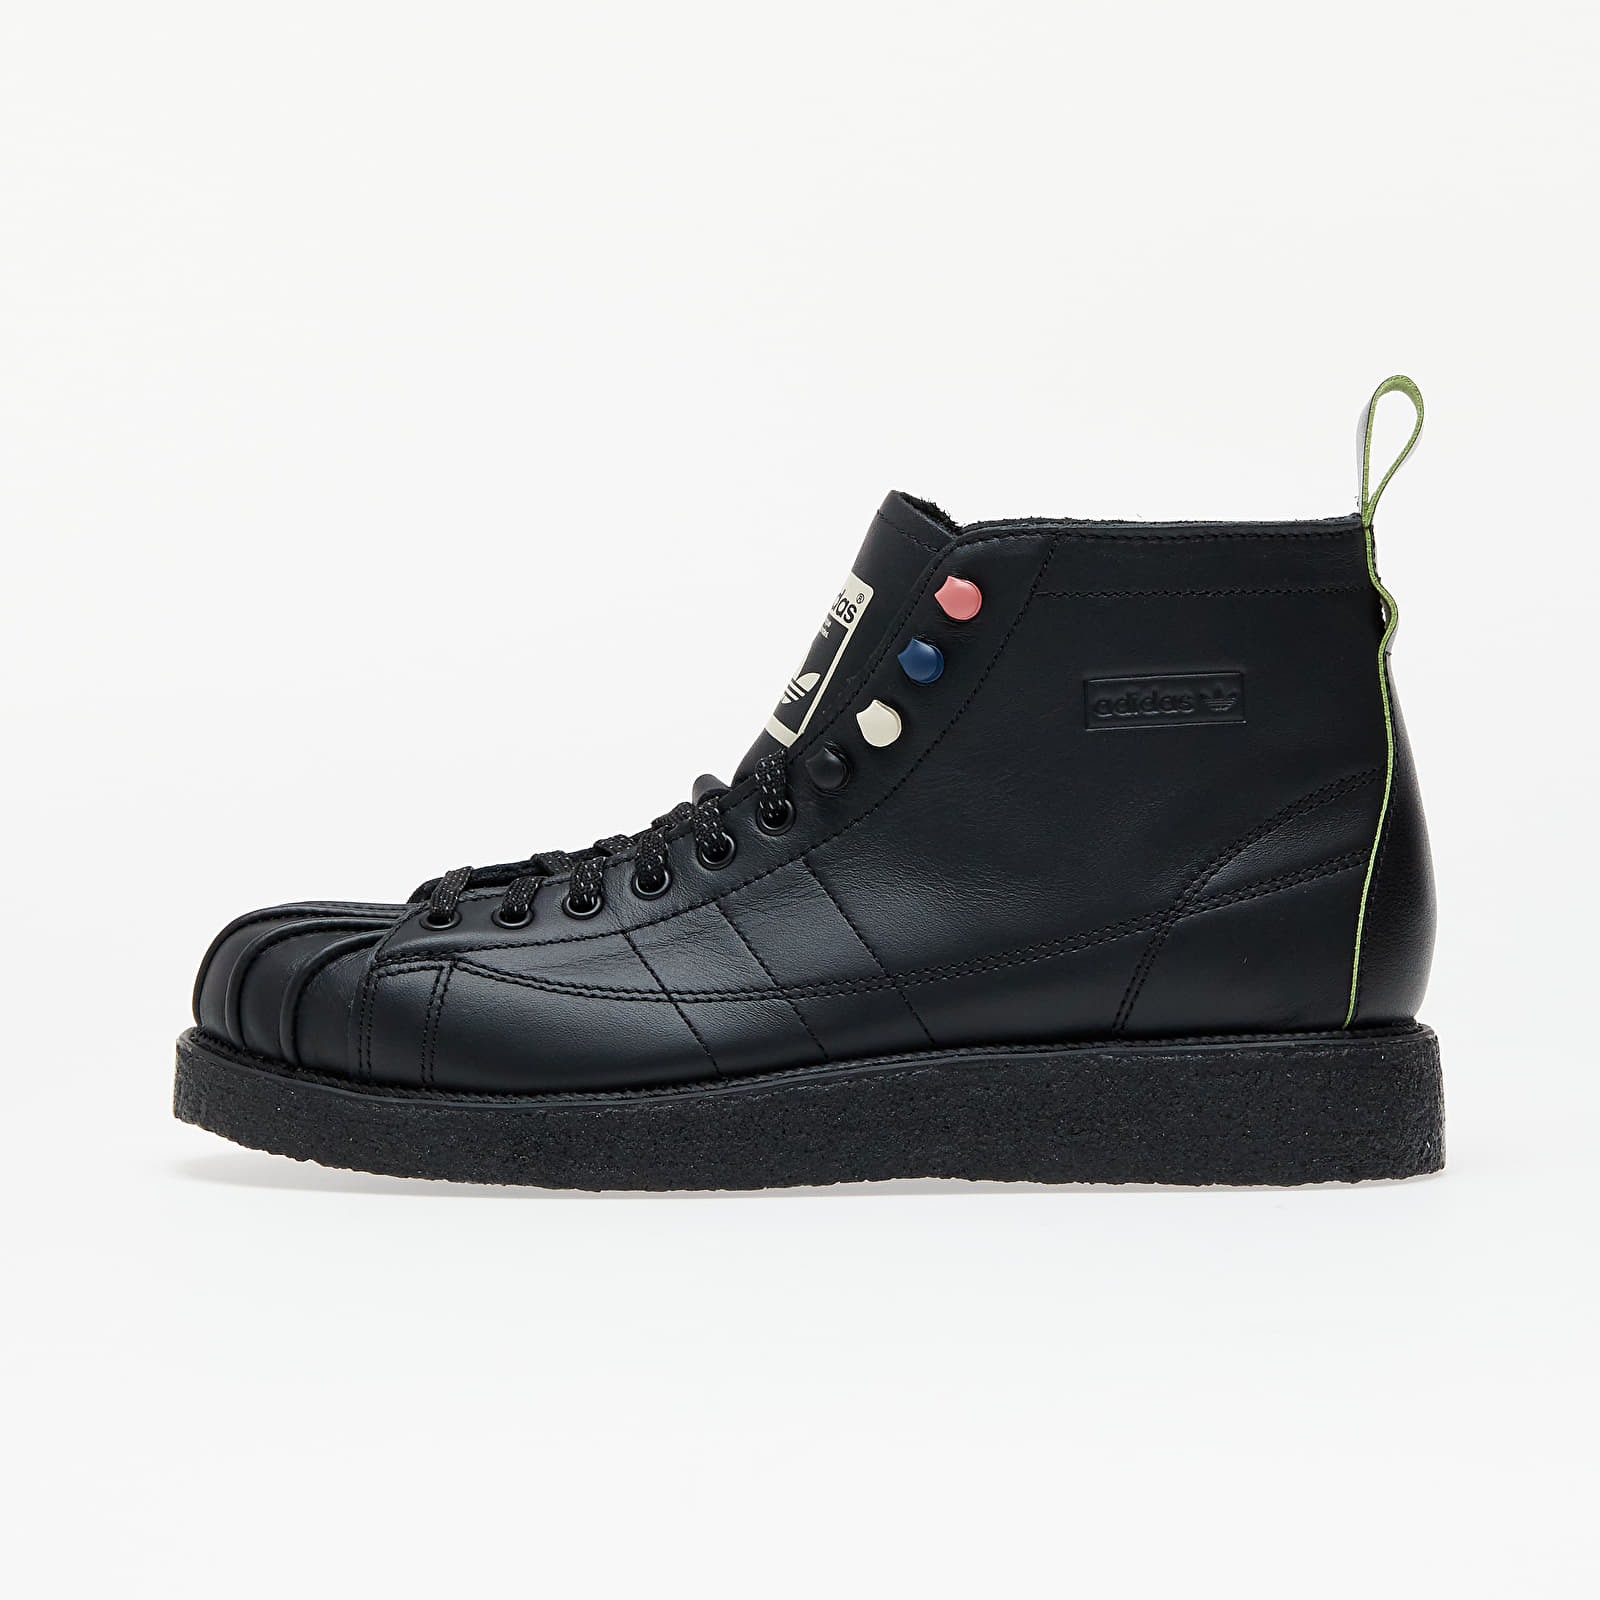 adidas Superstar Boot Luxe W Core Black/ Core Black/ Solar Green FY6994